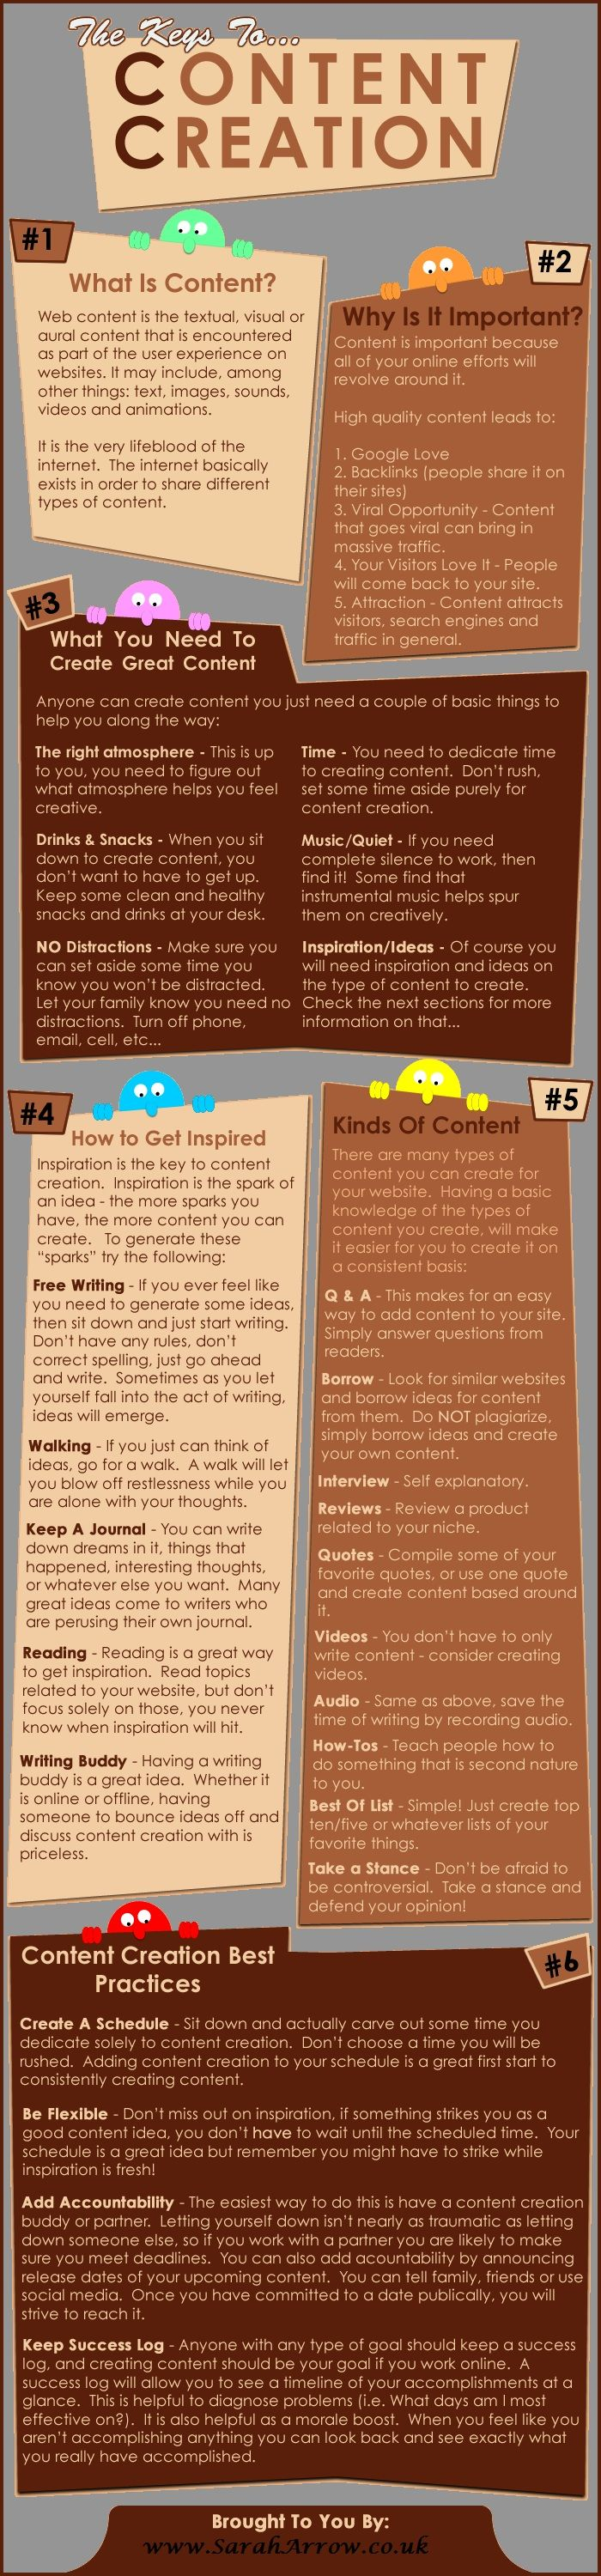 The Keys to Content Creation [Infographic]